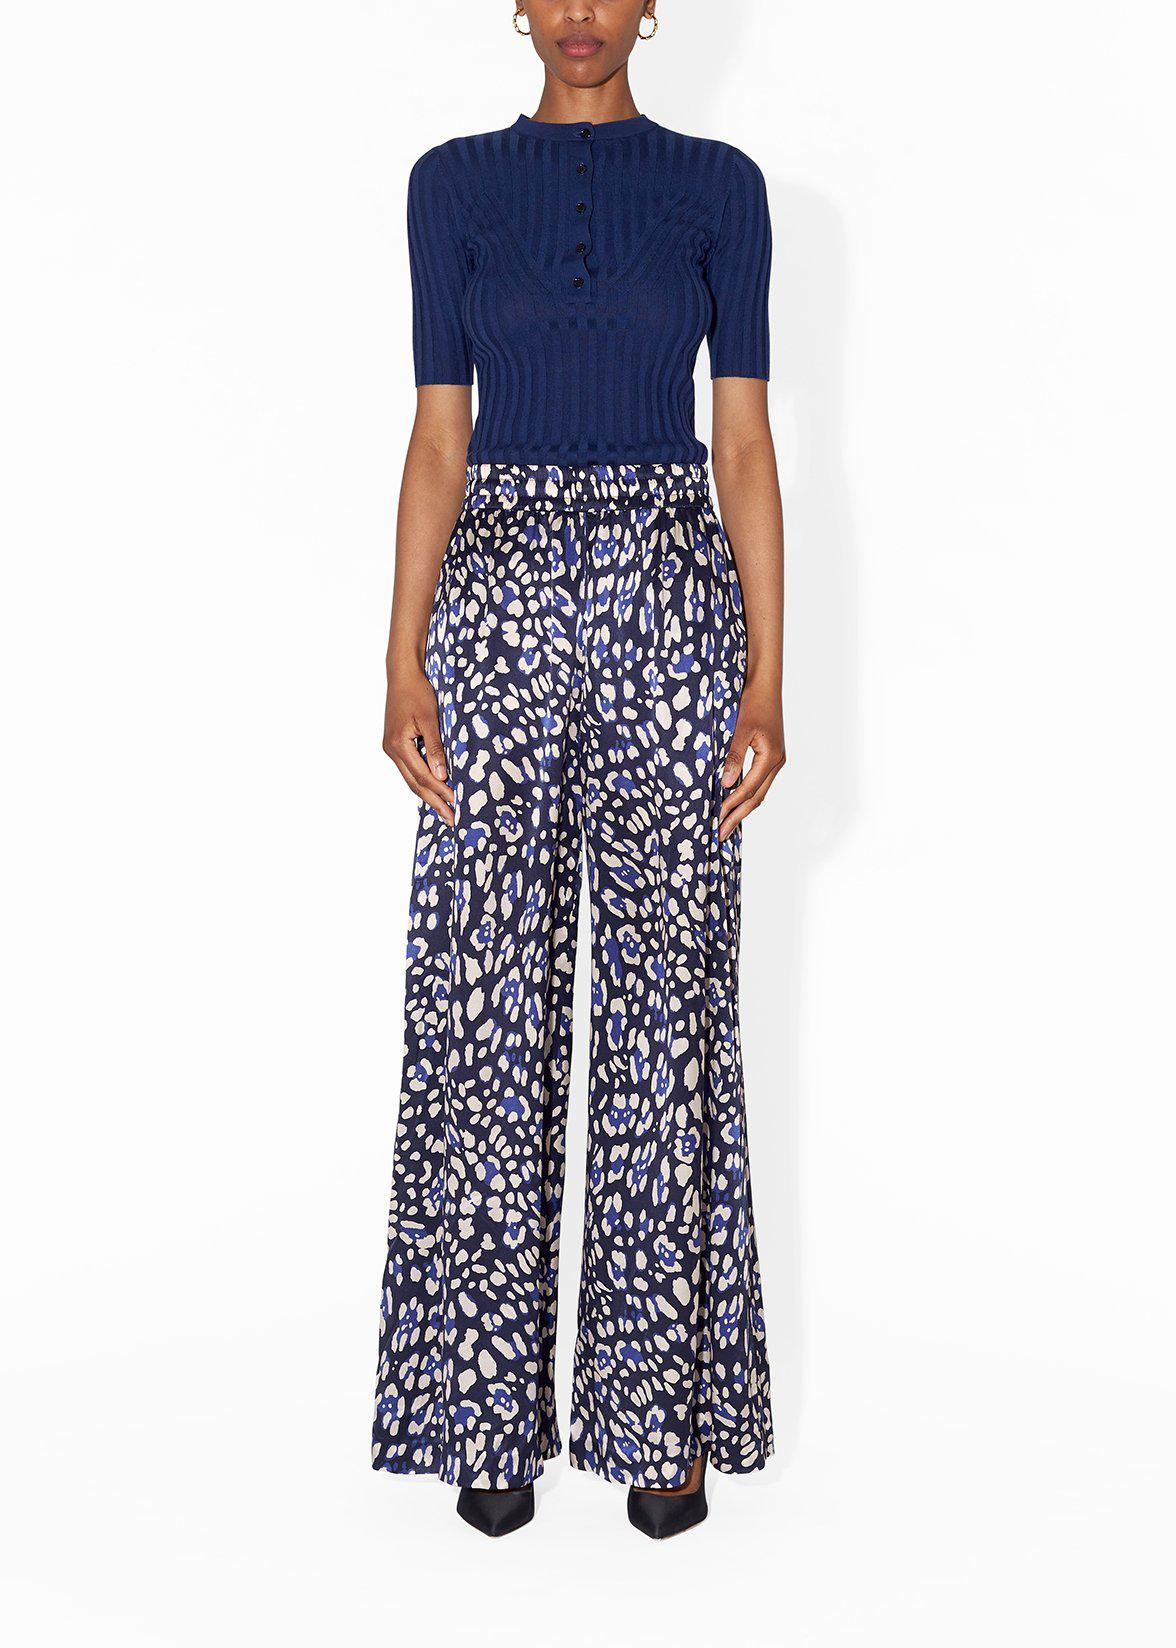 WIDE-LEG PANT IN PRINTED CHARMEUSE